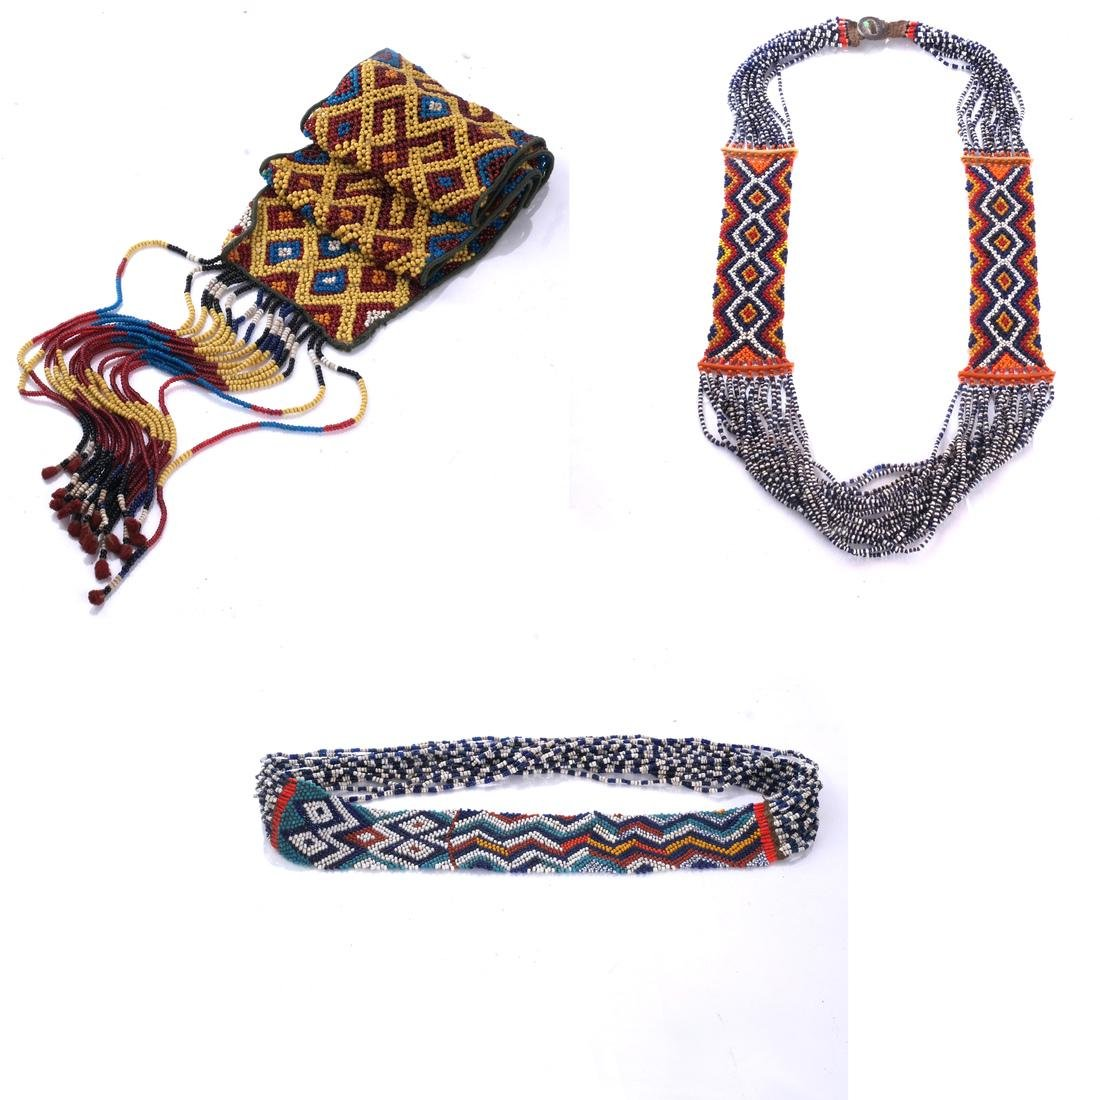 Asian, Tribal Necklaces and Accessories - 7